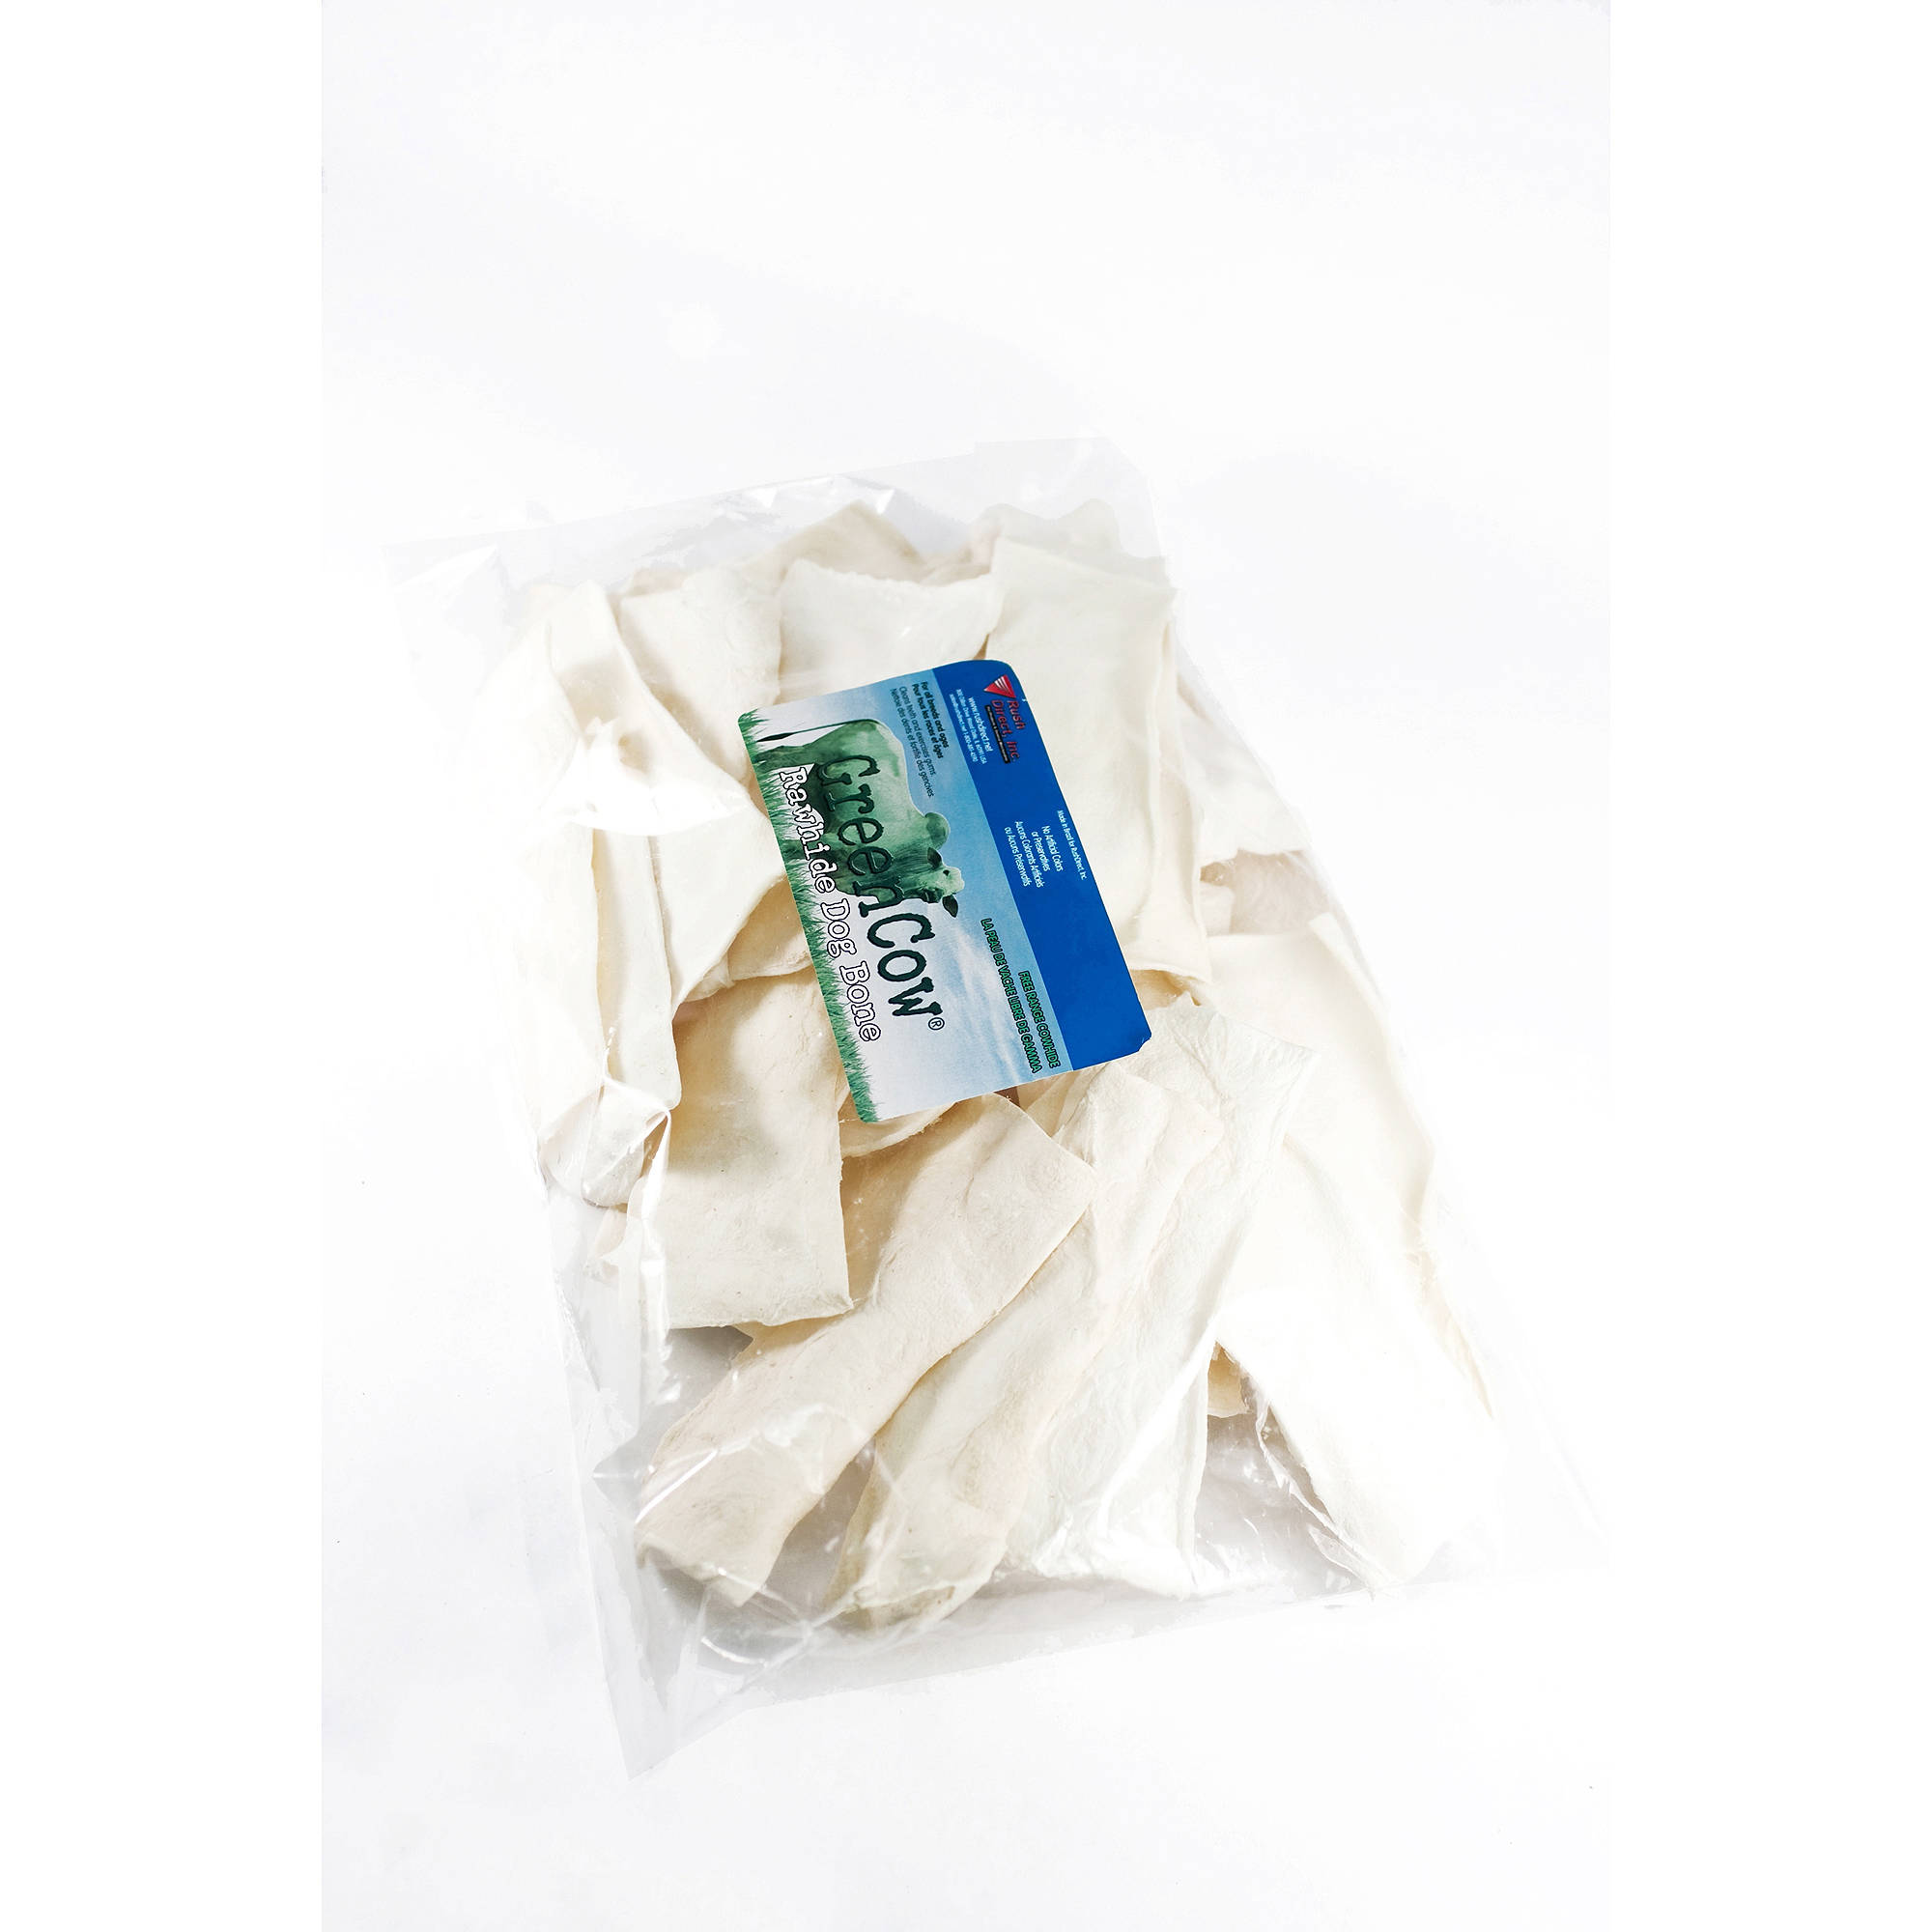 Green Cow Rawhide Chips, 1 lb.